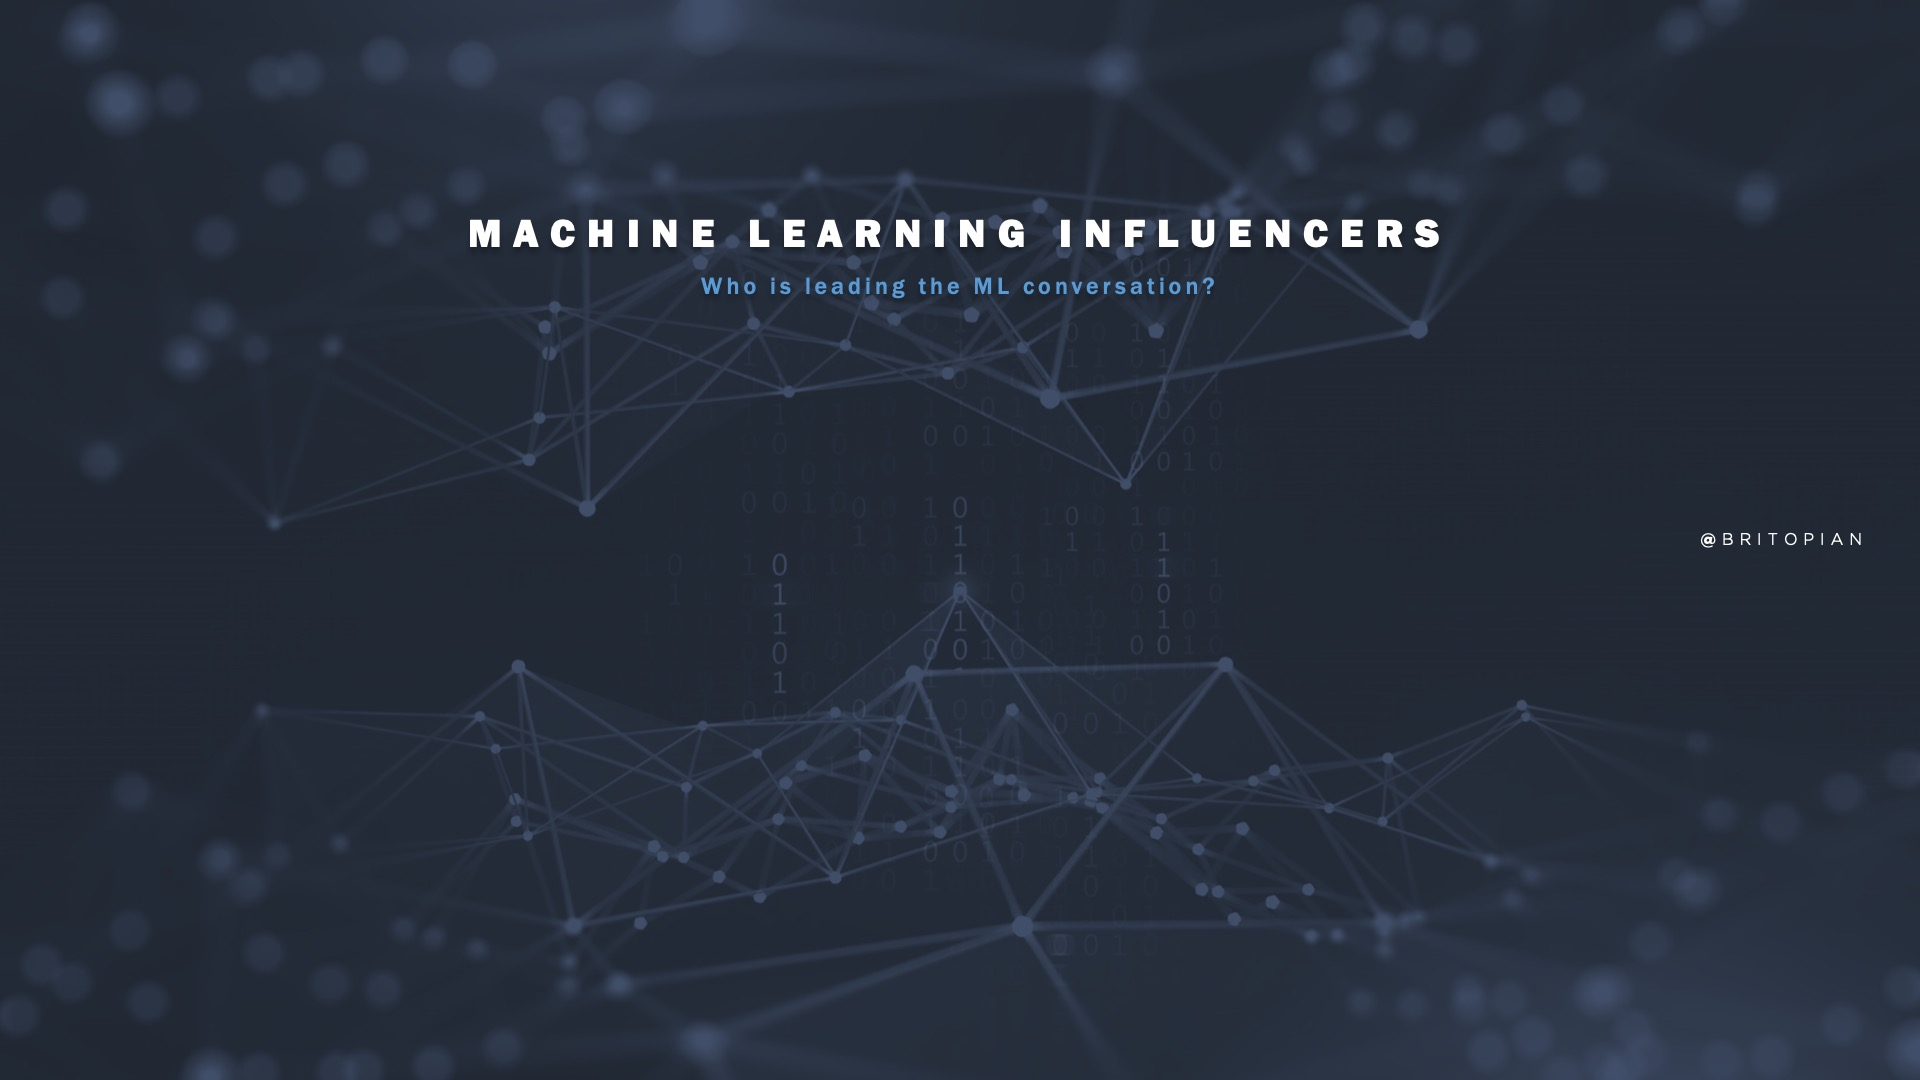 Machine Learning Influencers: Who's Leading the #ML Conversation?